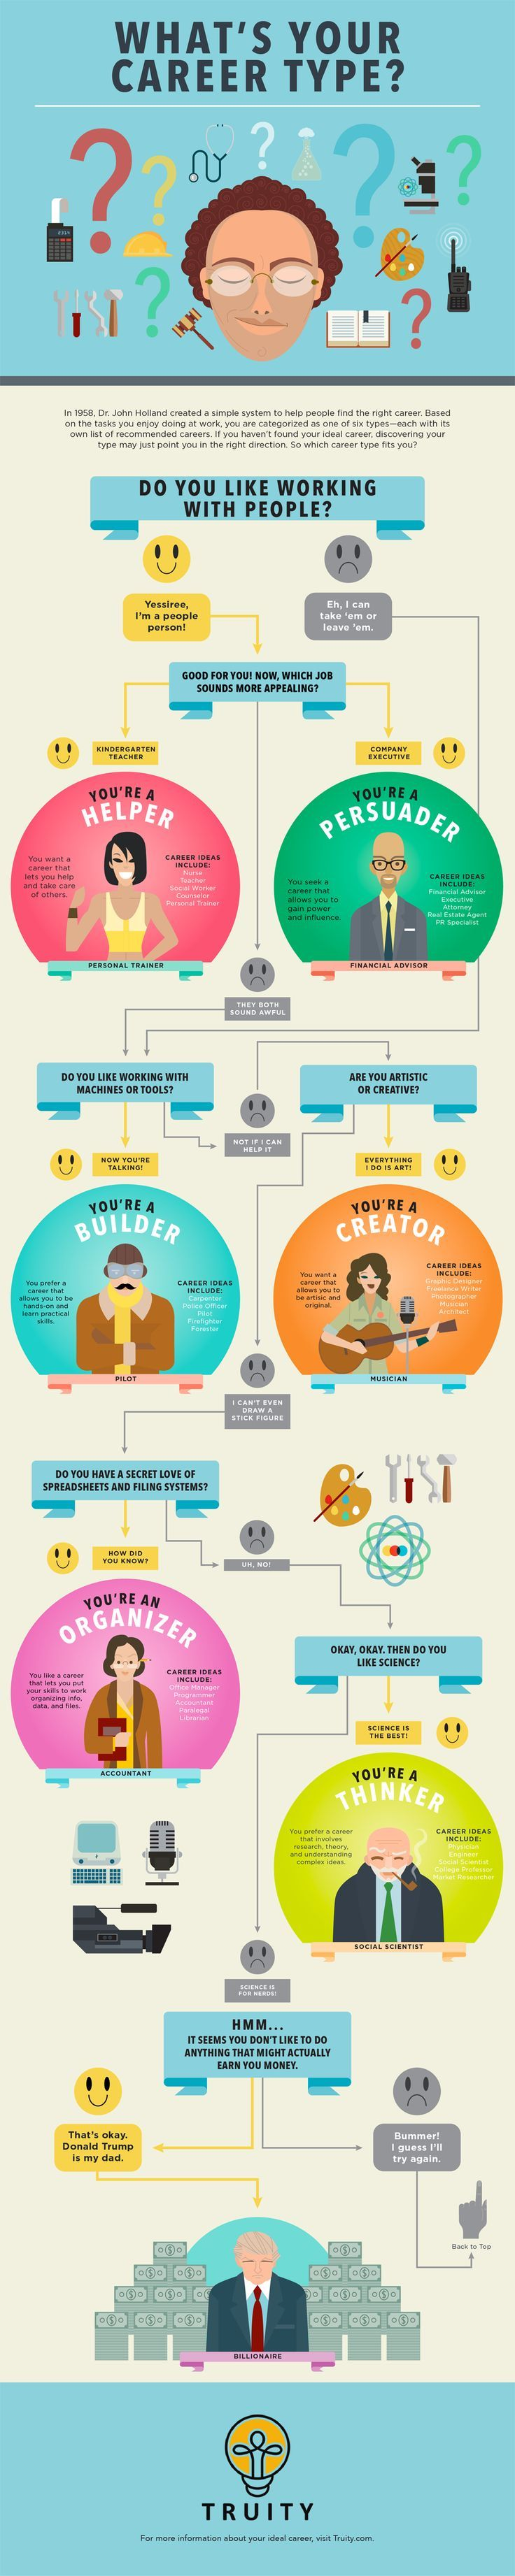 What Is The Best Type Of Career For Your Personality?